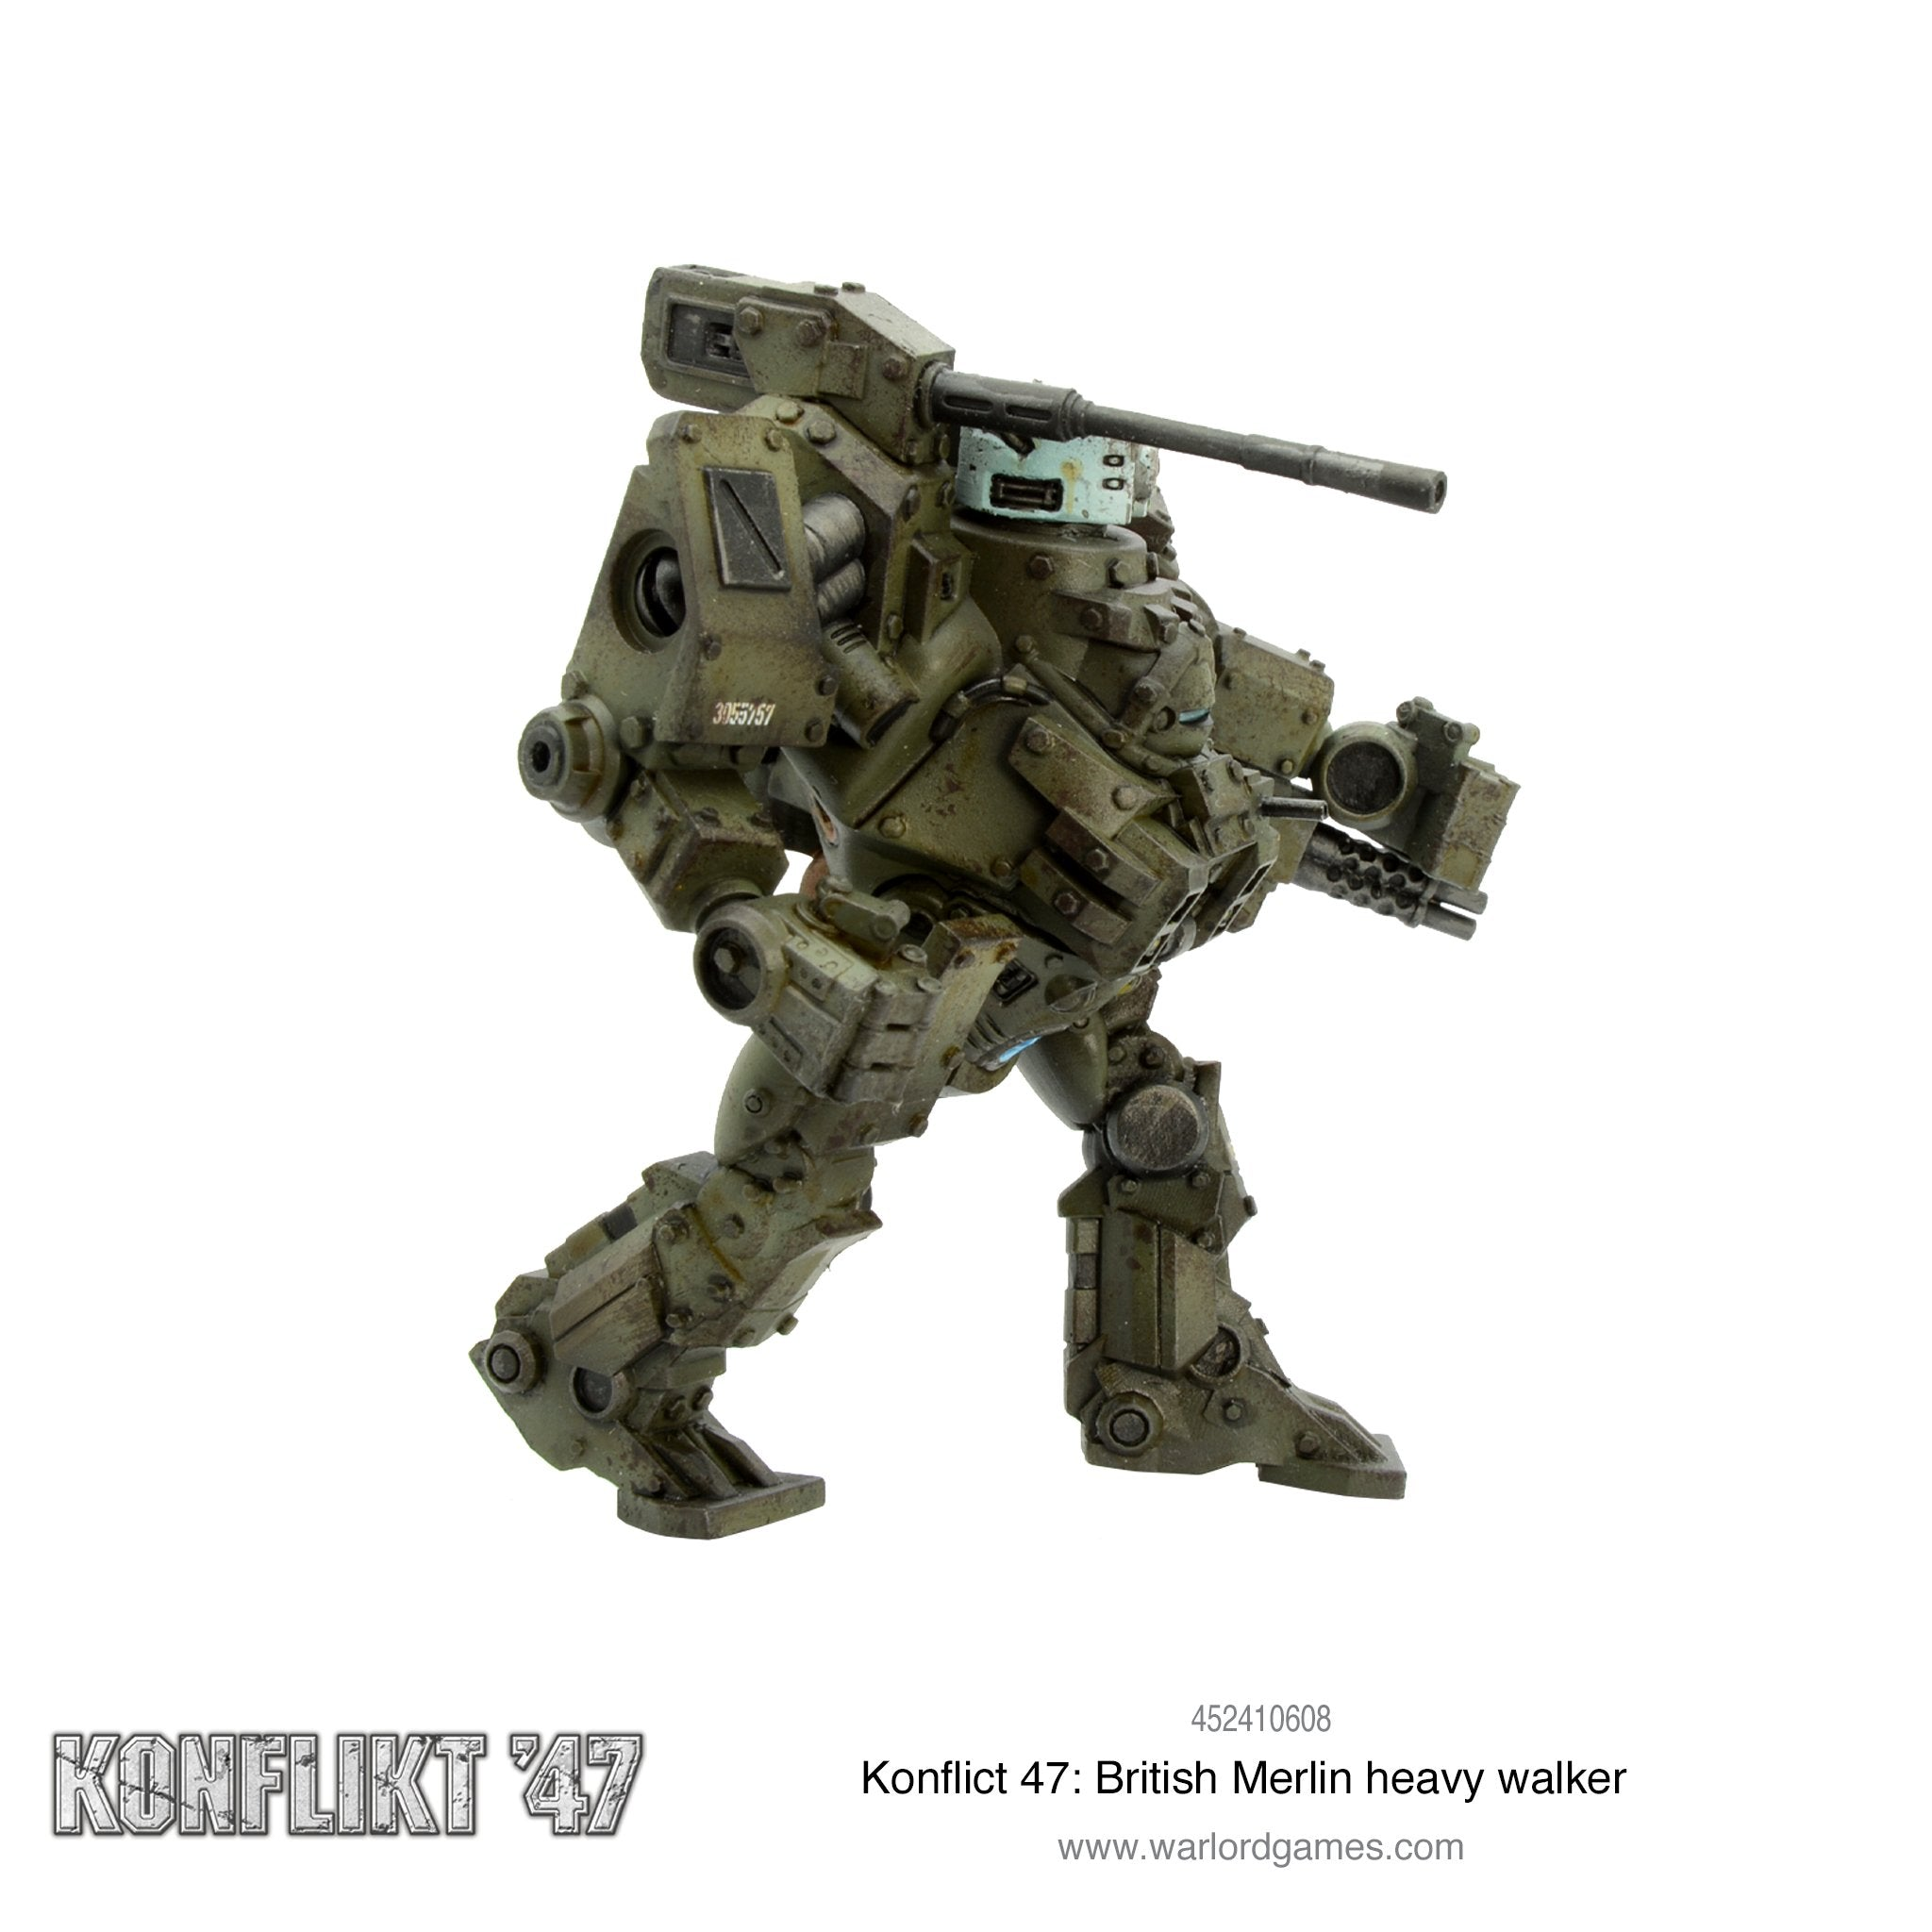 Konflikt 47: British Merlin heavy walker